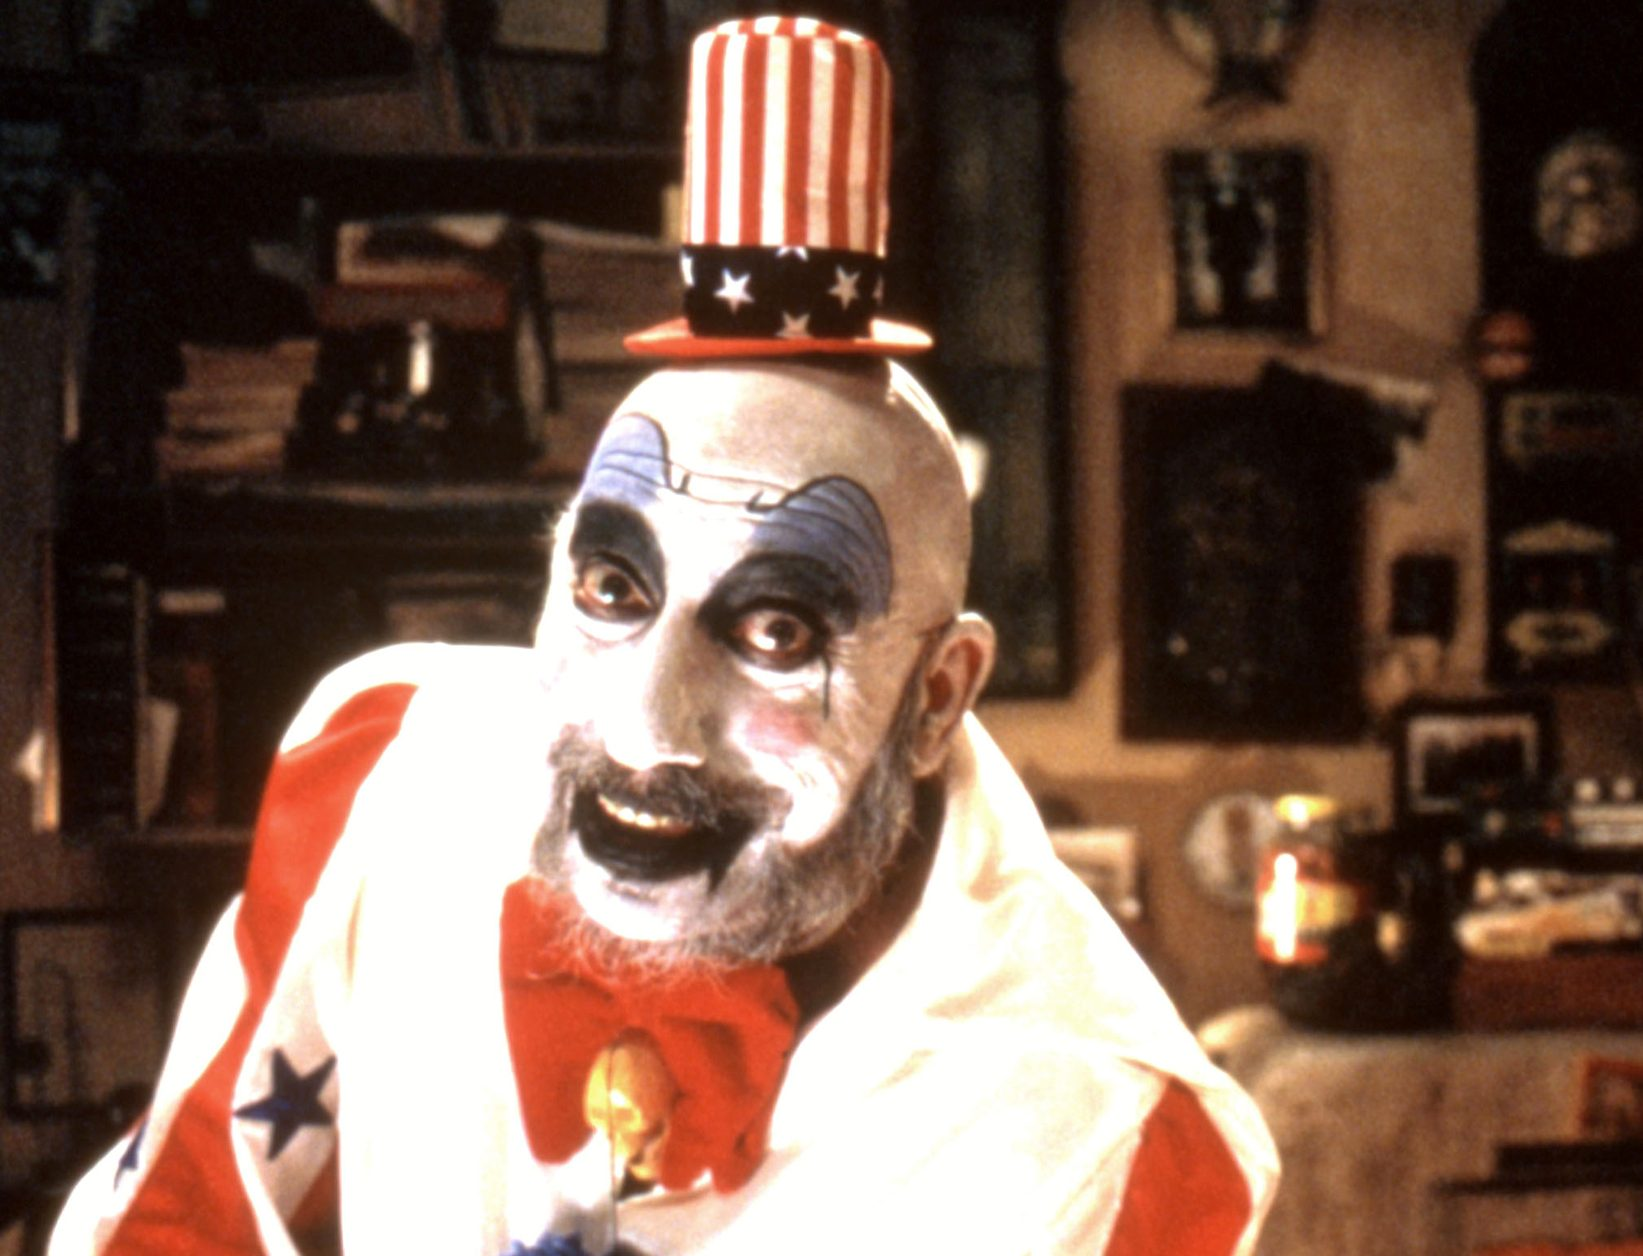 190923 sid haig corpses cs 1119a b90000301d1a834a5d91c46c11d91bd3 e1614851018960 30 Things You Probably Didn't Know About Jackie Brown